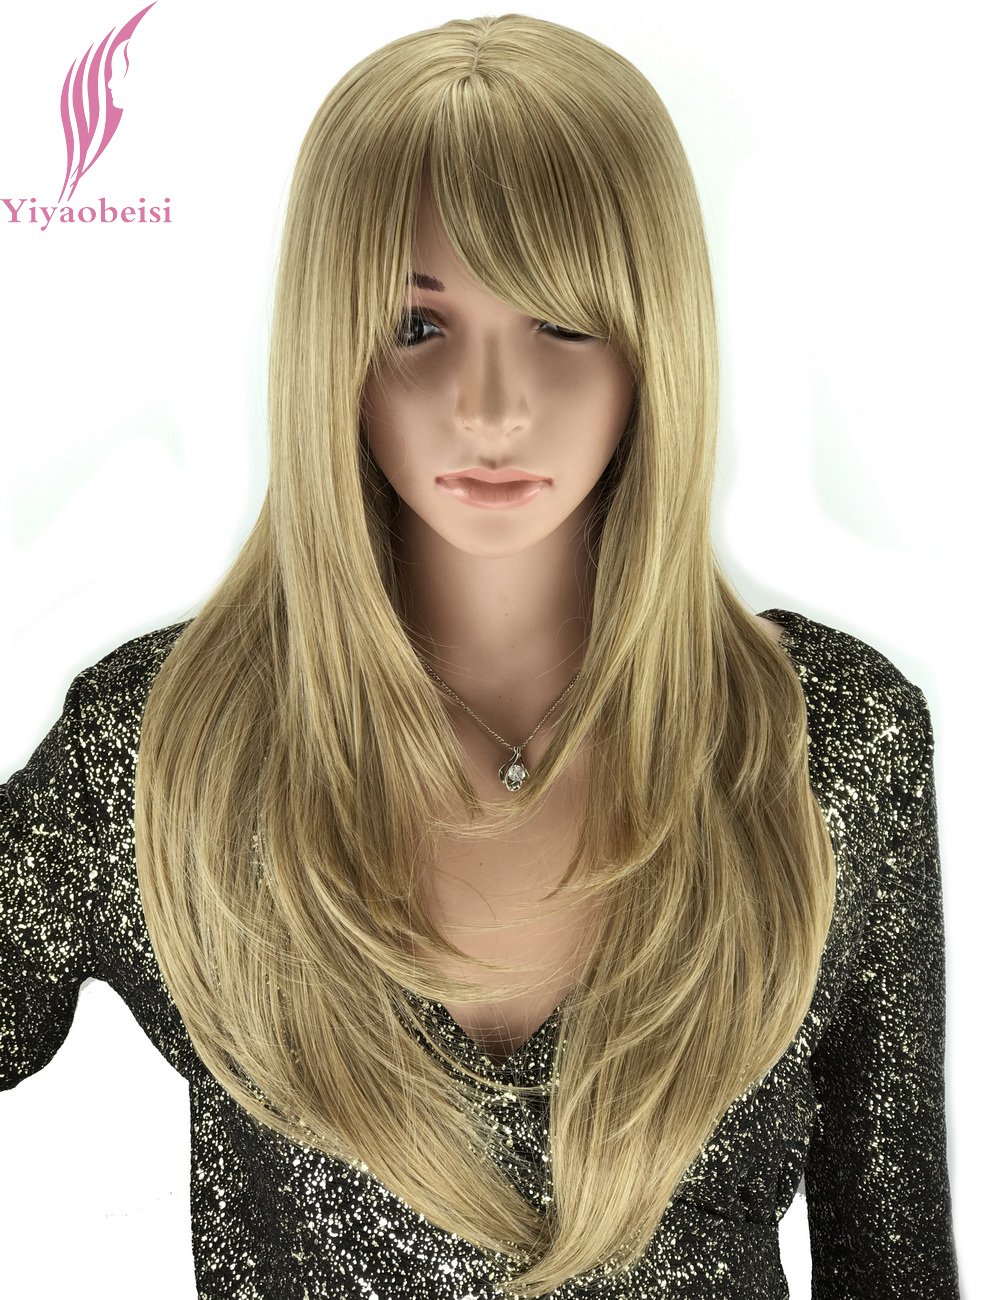 Yiyaobess 50cm European Natural Hairstyles With Bangs Heat Resistant Synthetic Hair Long Straight Blonde Wig For White Women